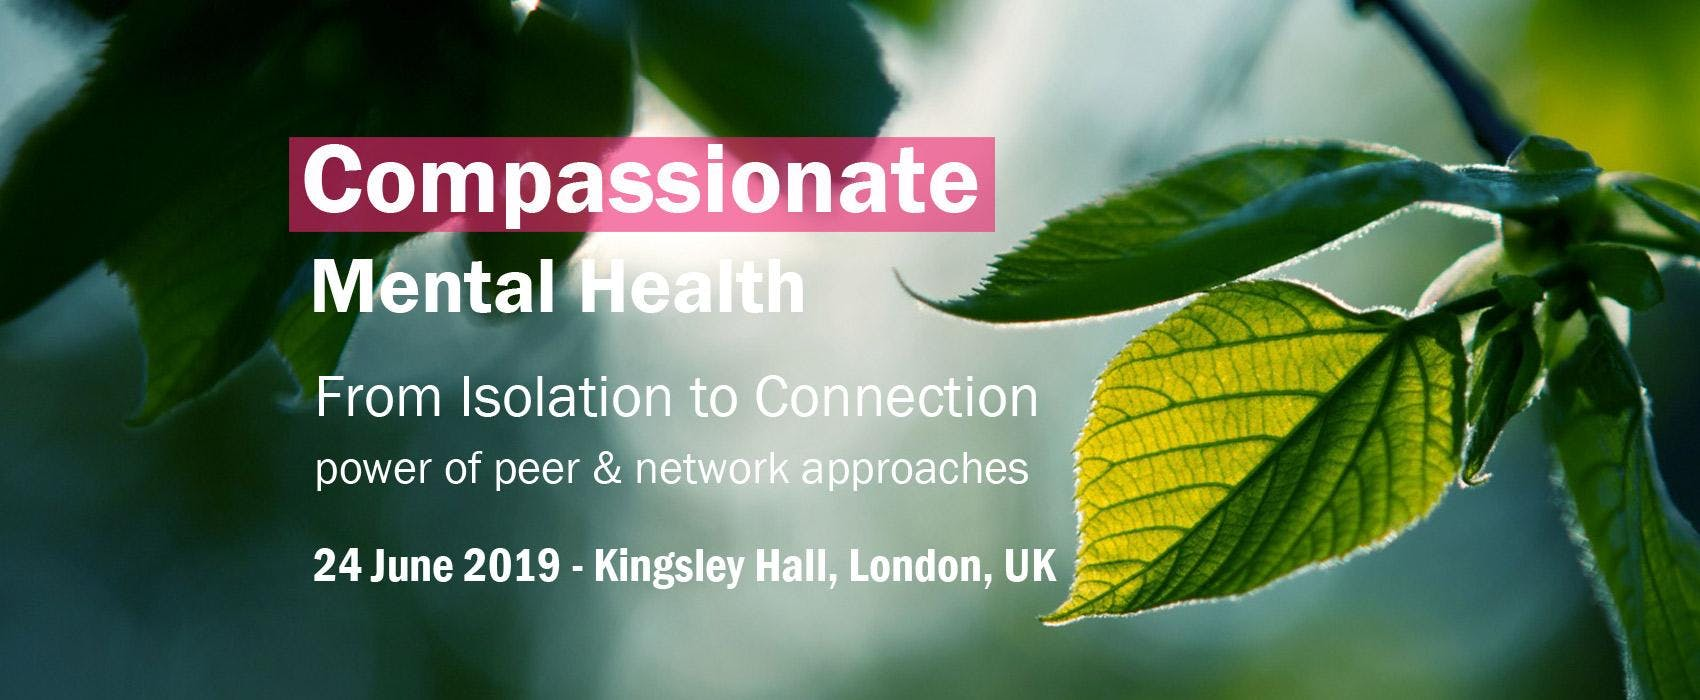 From Isolation to Connection - power of peer & network approaches